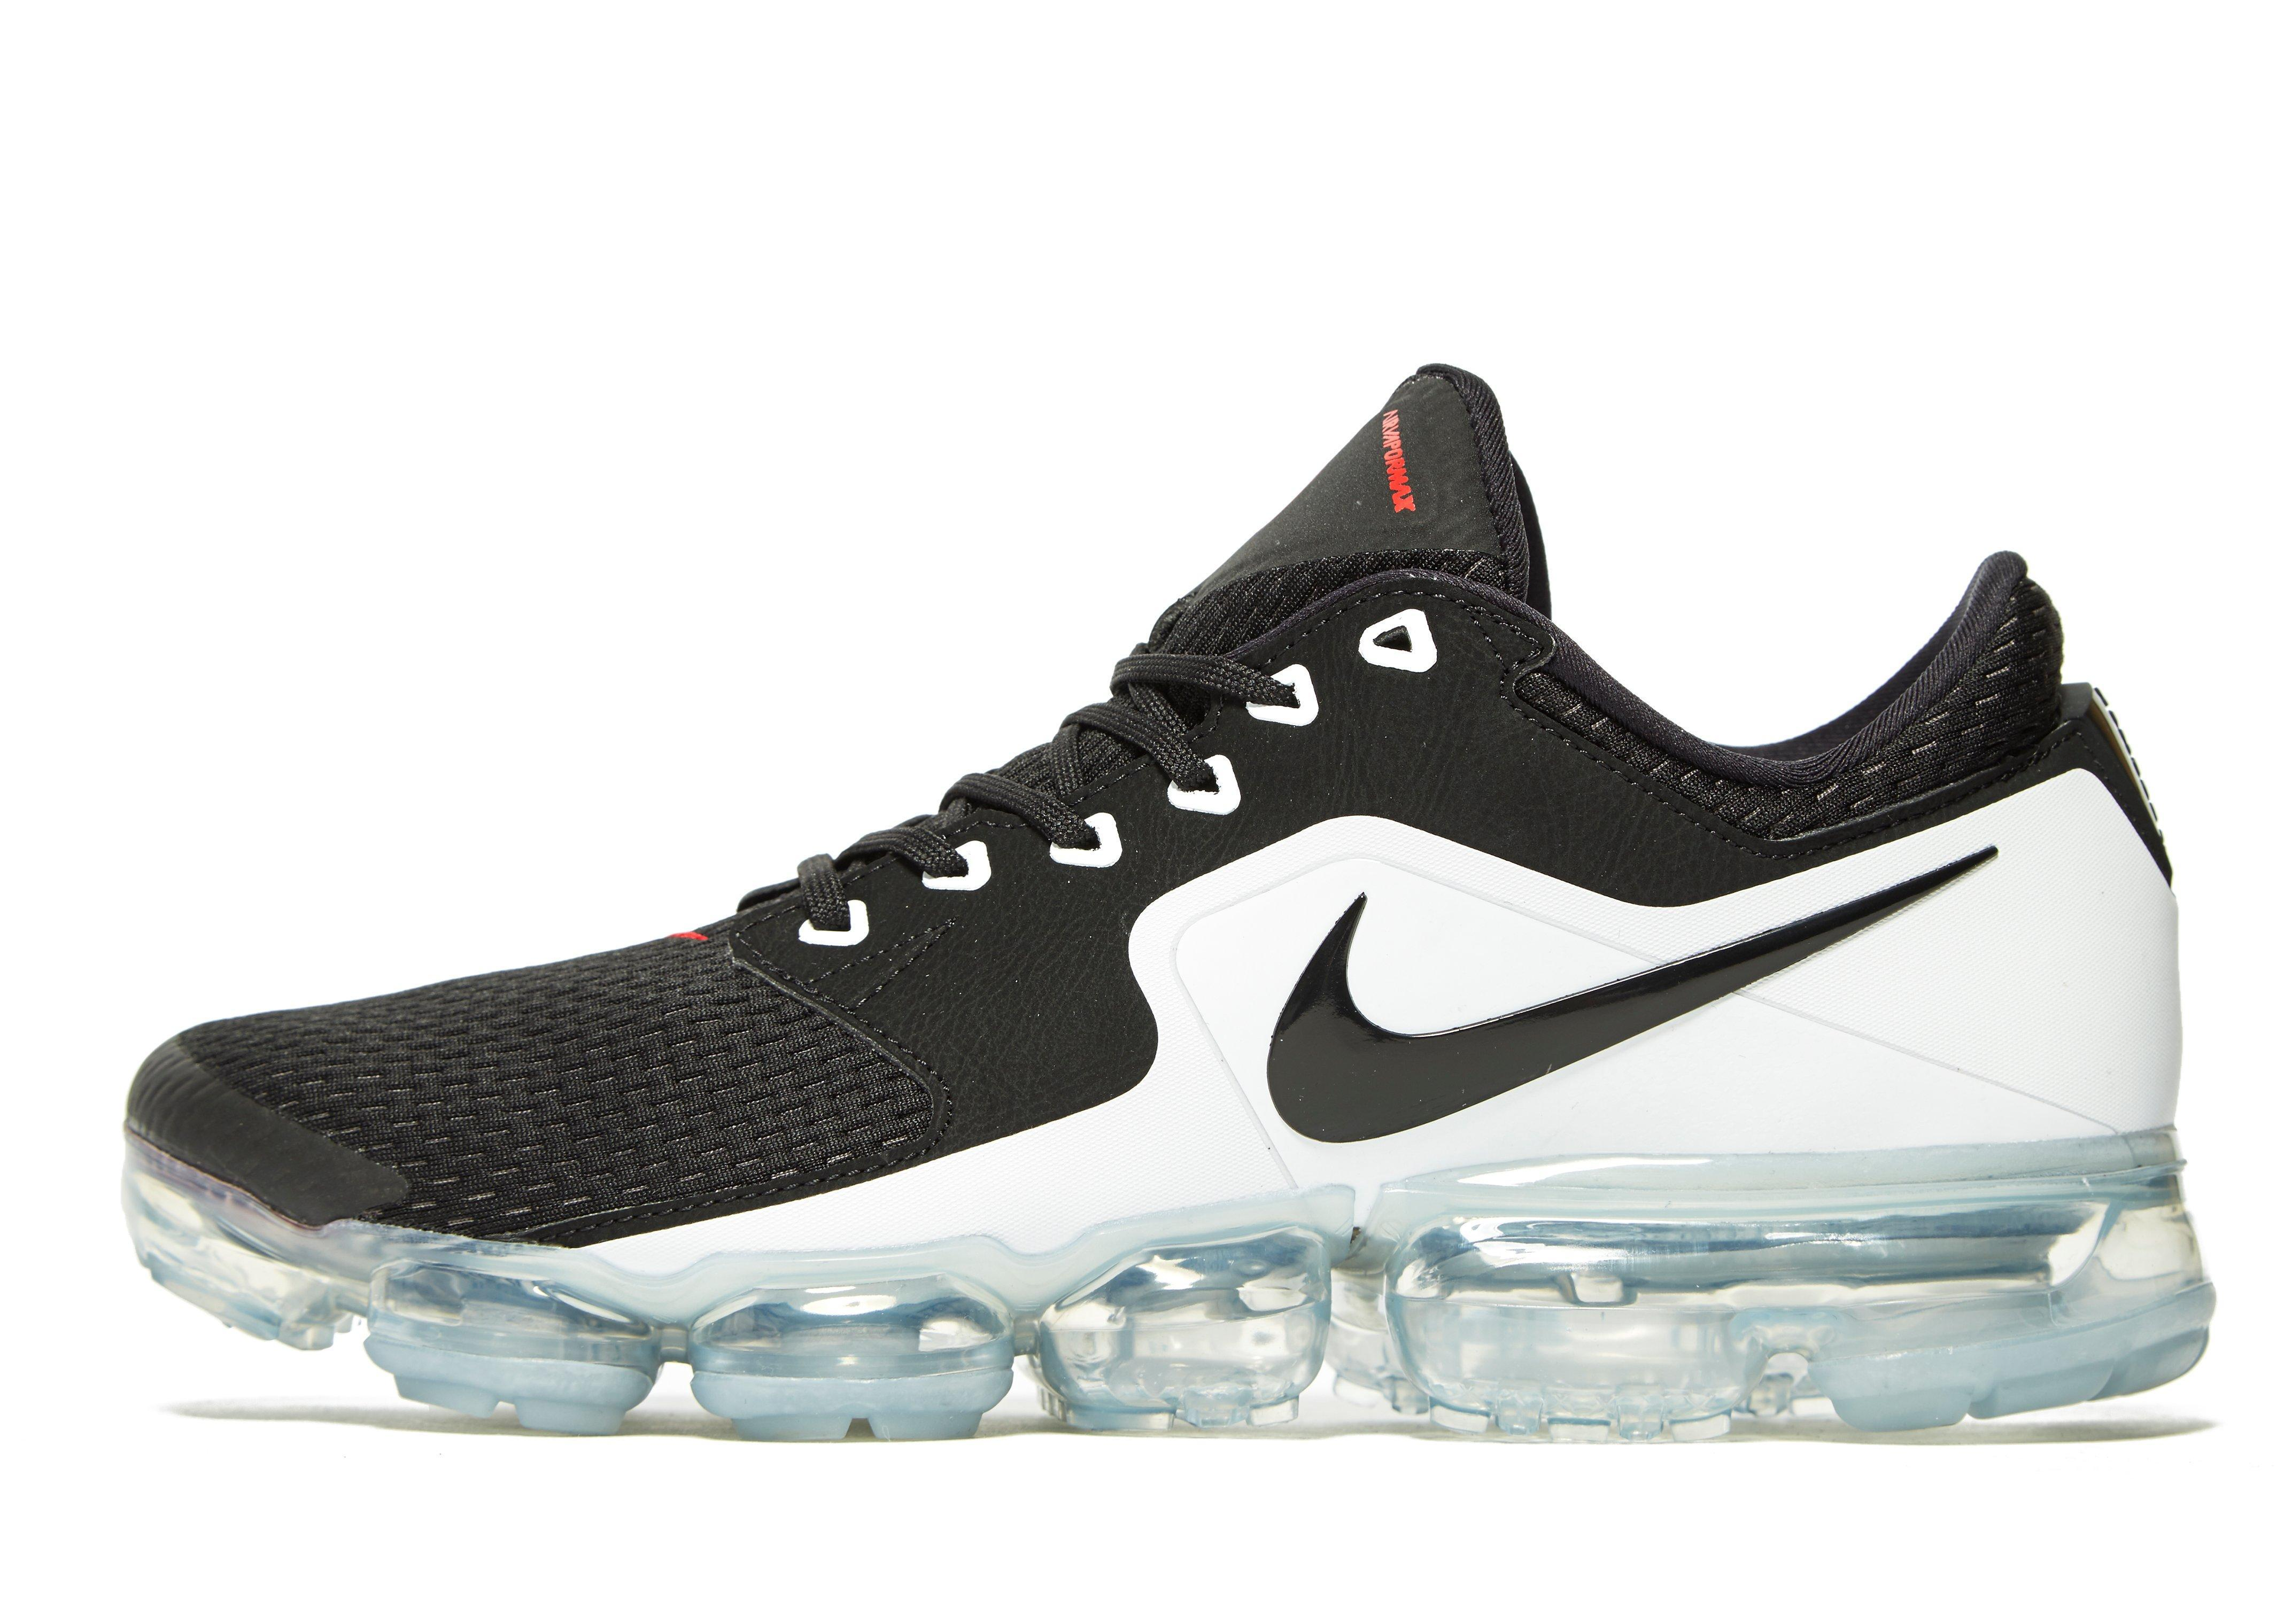 1a31ee2878 Nike Air Vapormax in Black for Men - Lyst